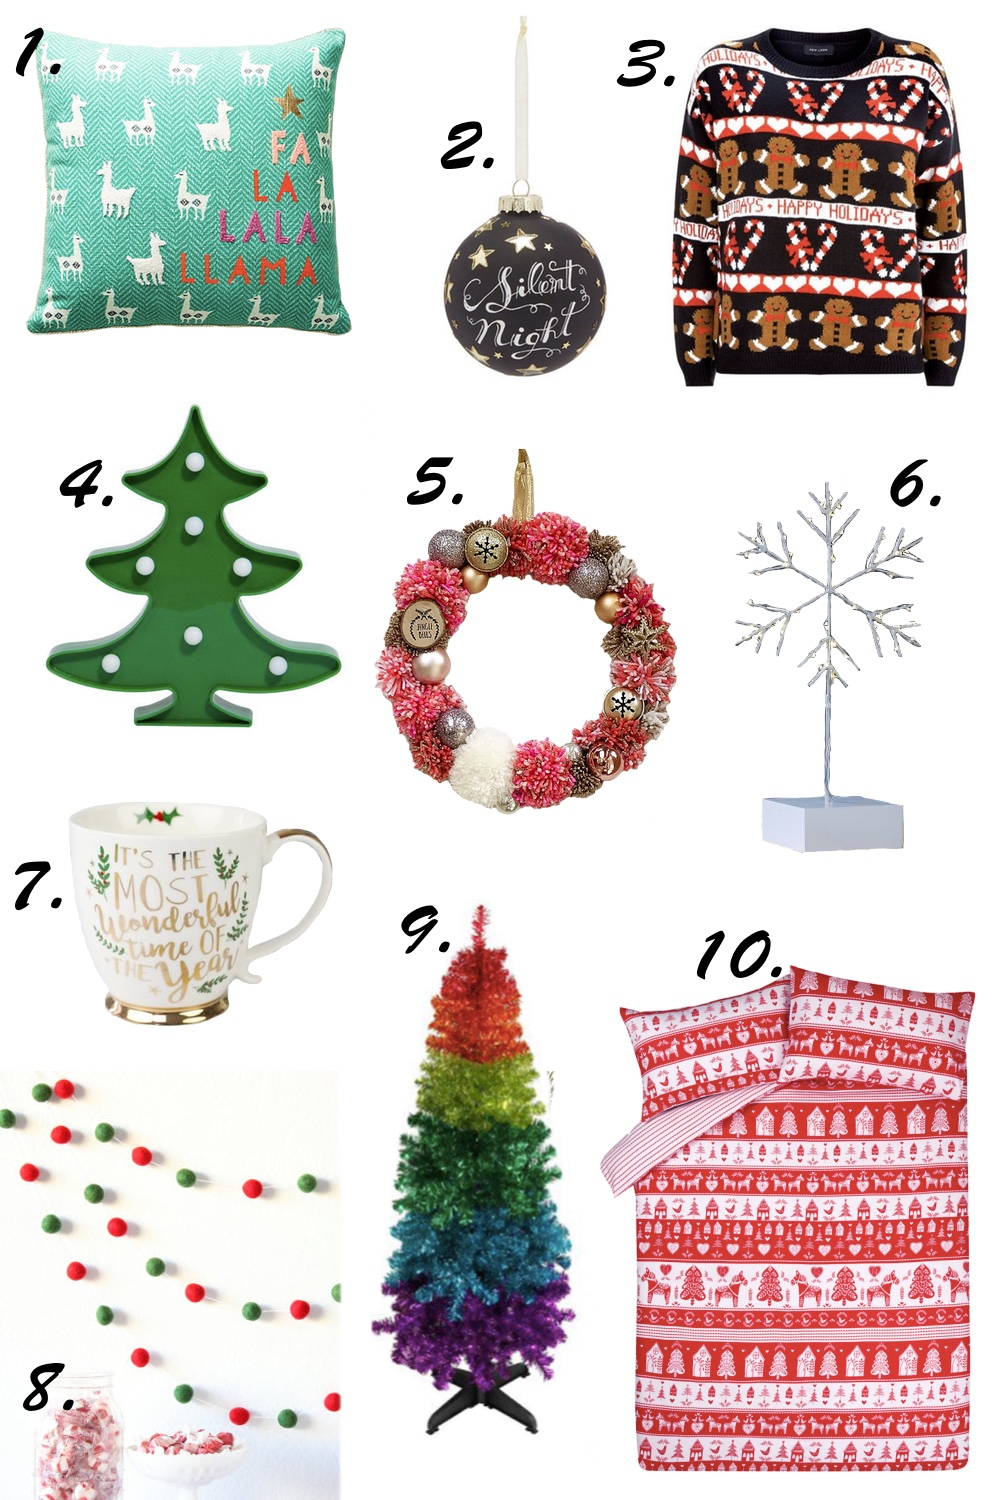 Christmas Decorations Guide -Top Picks - Nomad Seeks Home